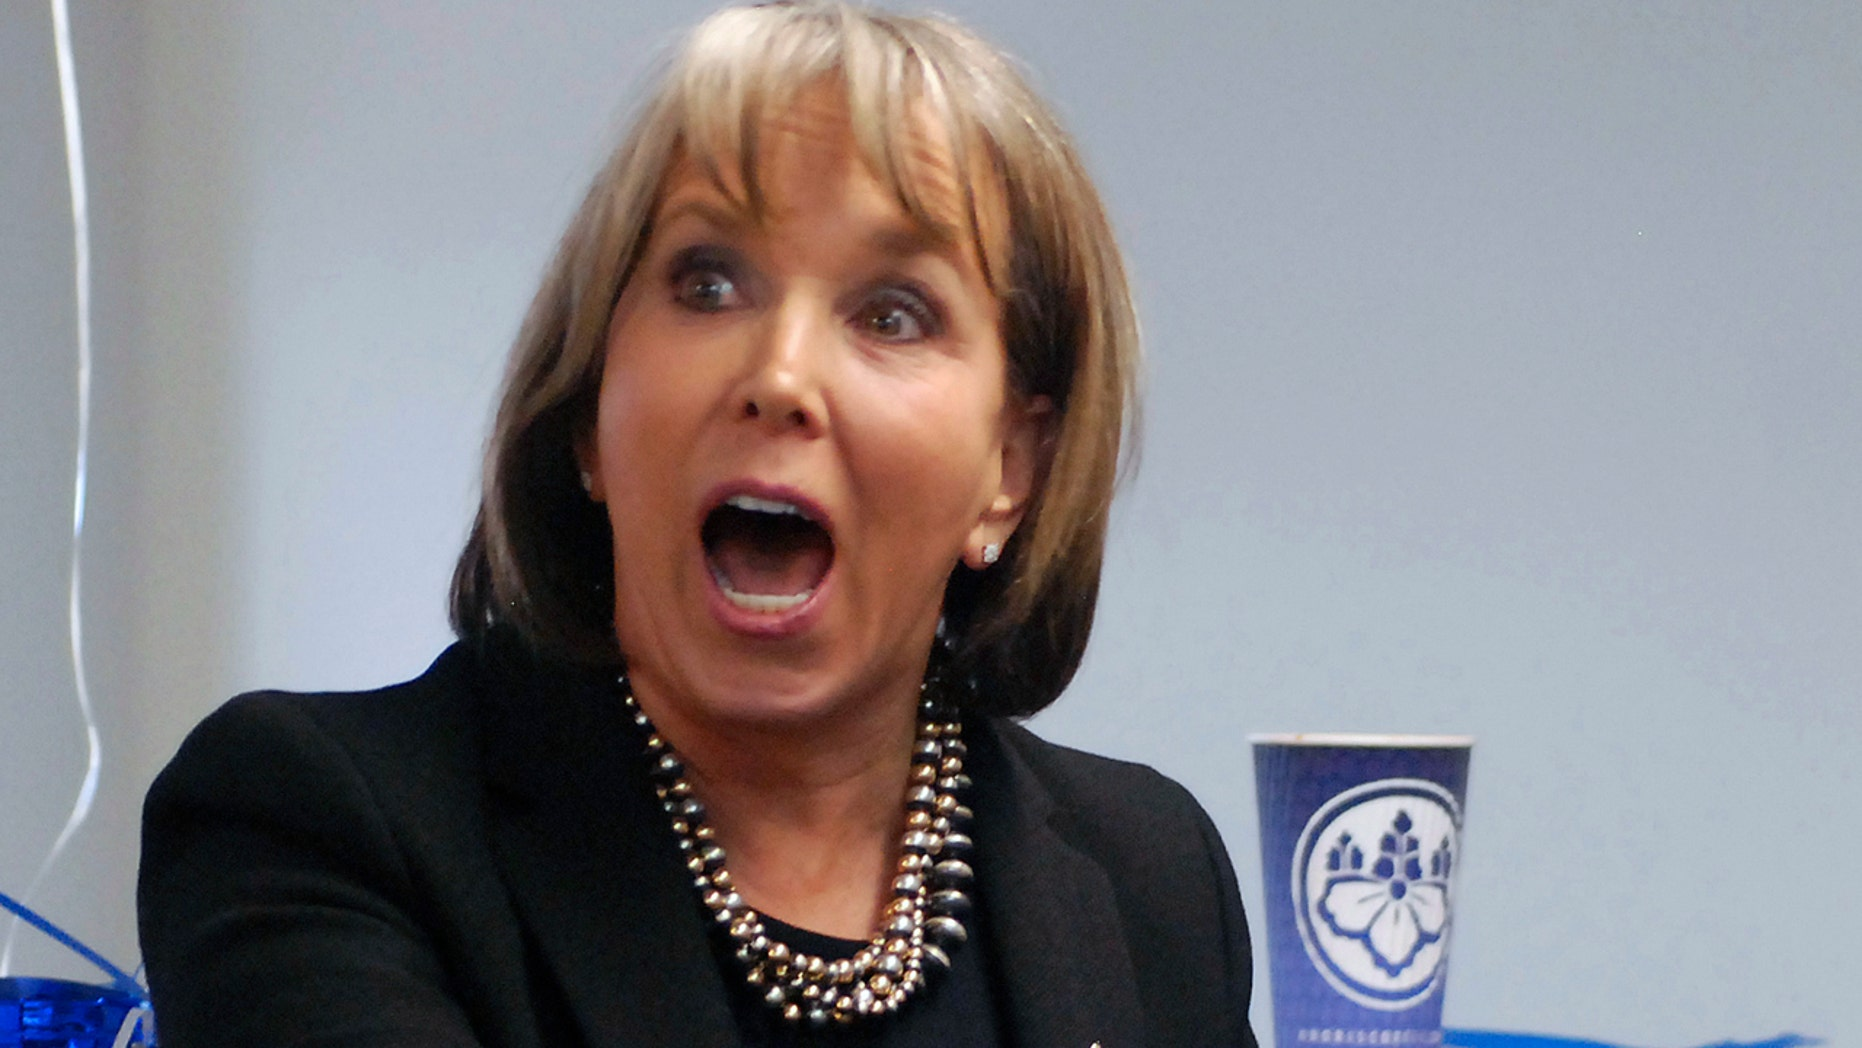 U.S. Rep. Michelle Lujan Grisham will face Republican U.S. Rep. Steve Pearce in November's general election.